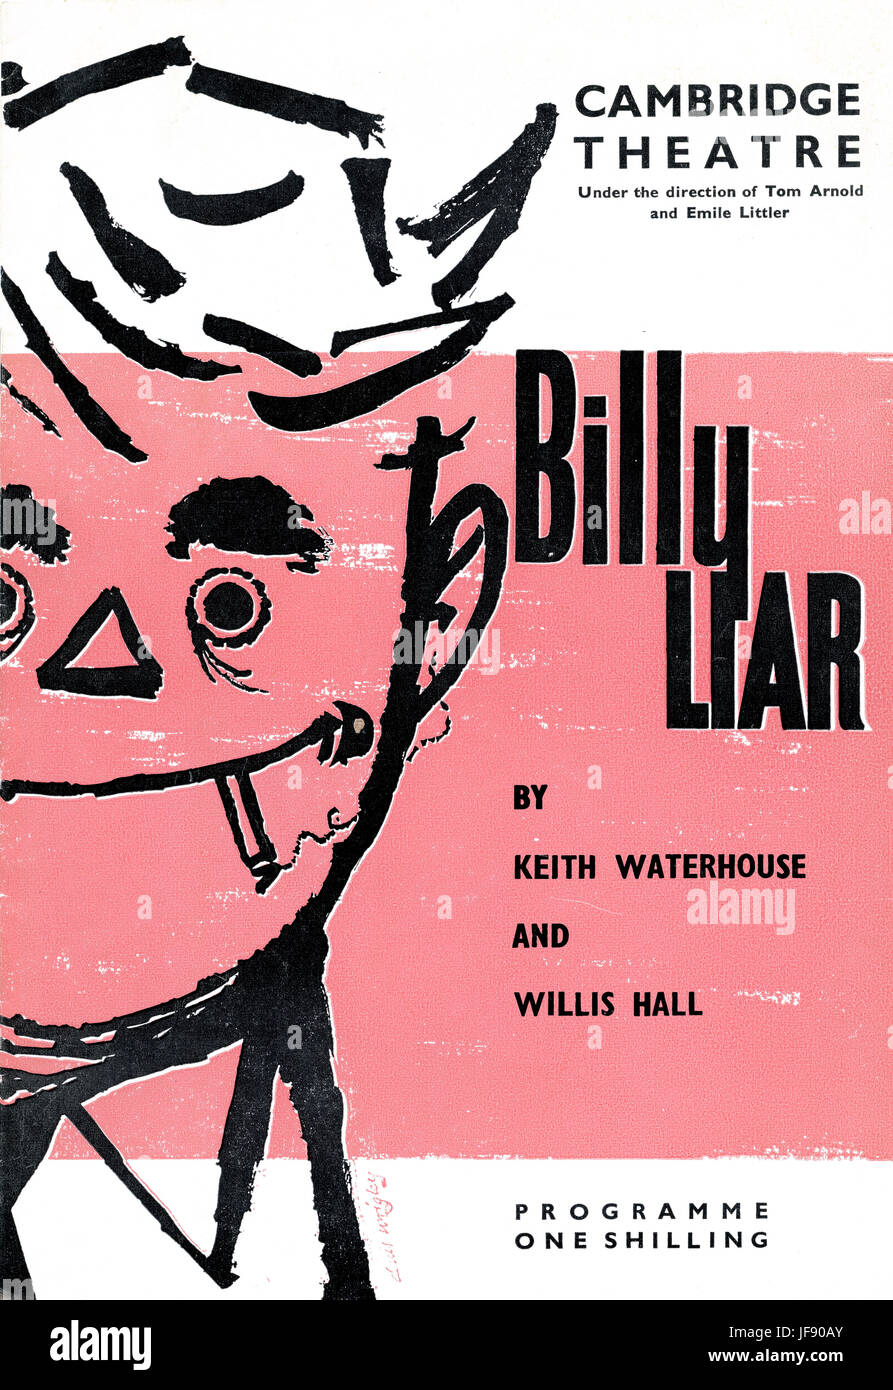 Billy Liar, play based on 1959 novel by Keith Waterhouse. KW co-wrote a three-act stage version with Willis Hall. - Stock Image